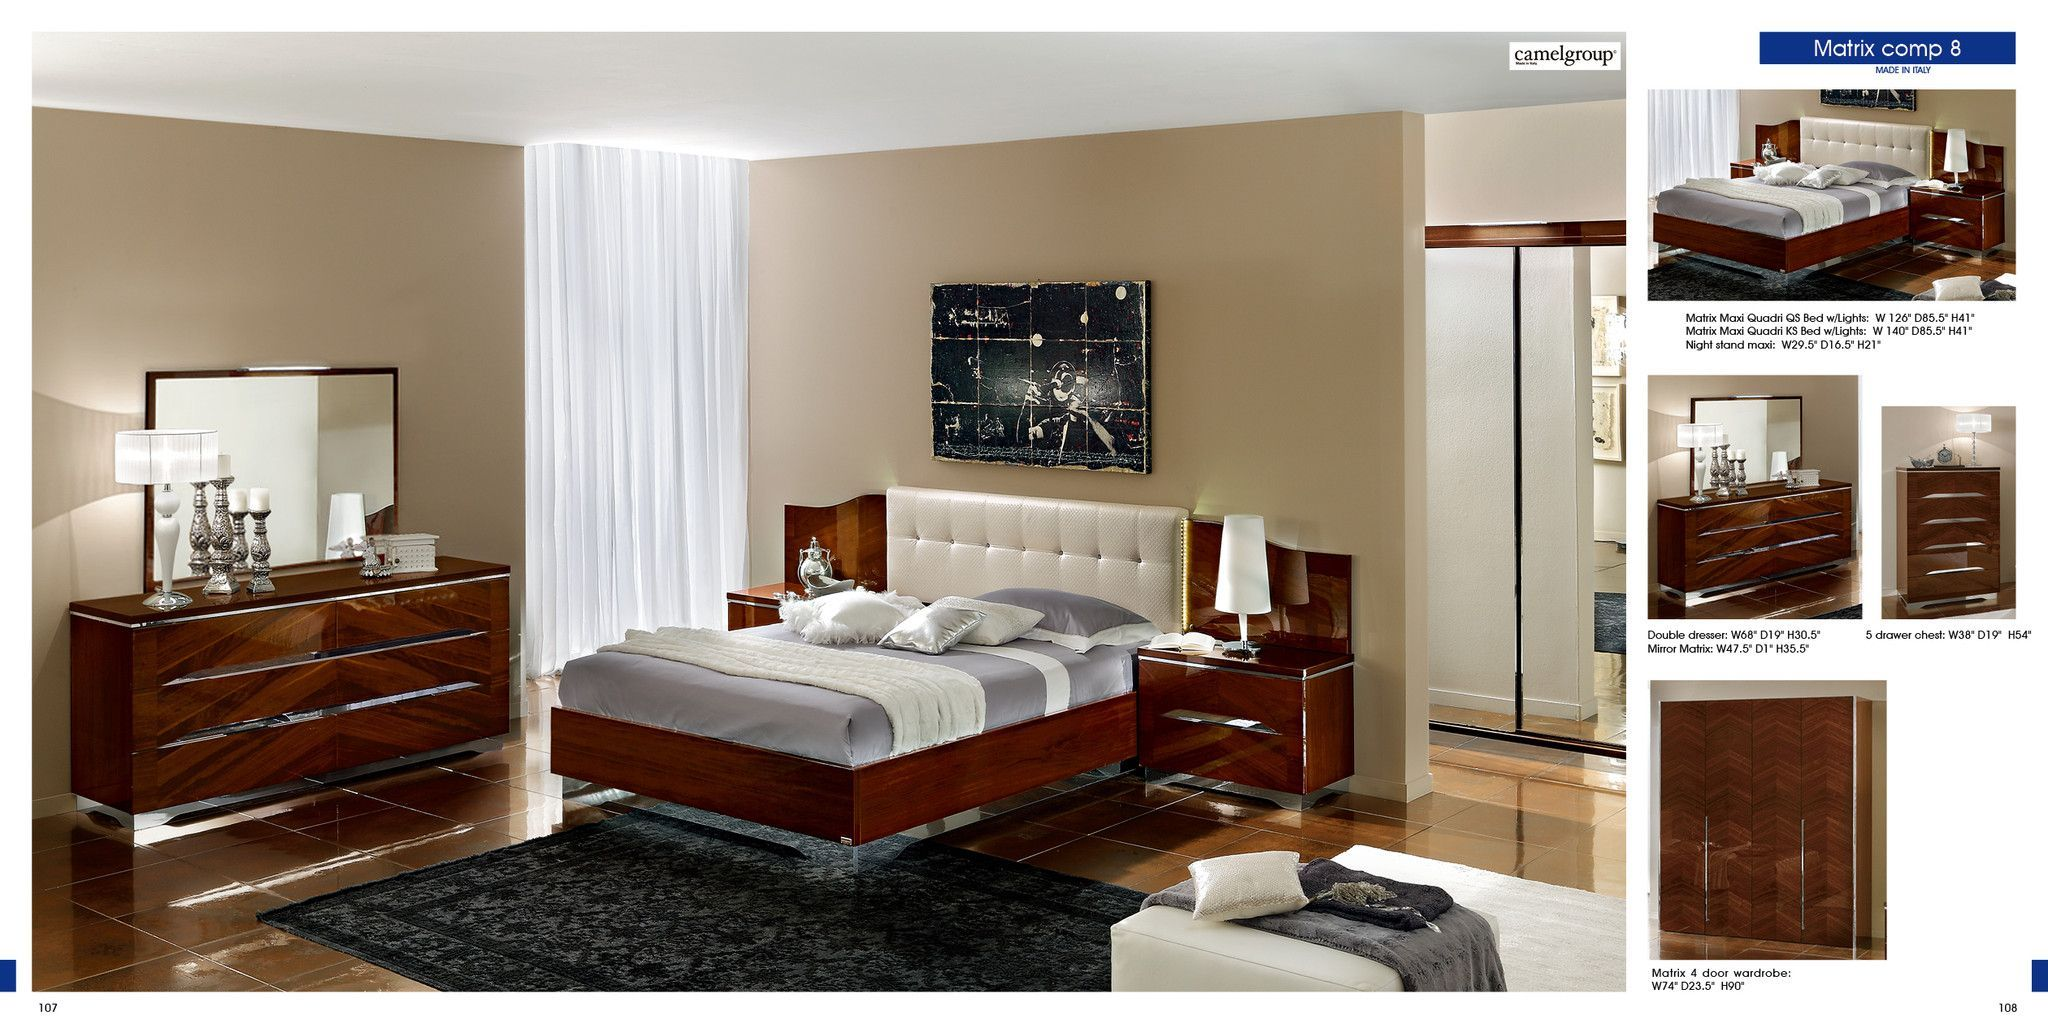 Master bedroom 5 door wardrobe designs for bedroom  Matrix Composition  with White headboard Camelgroup Italy